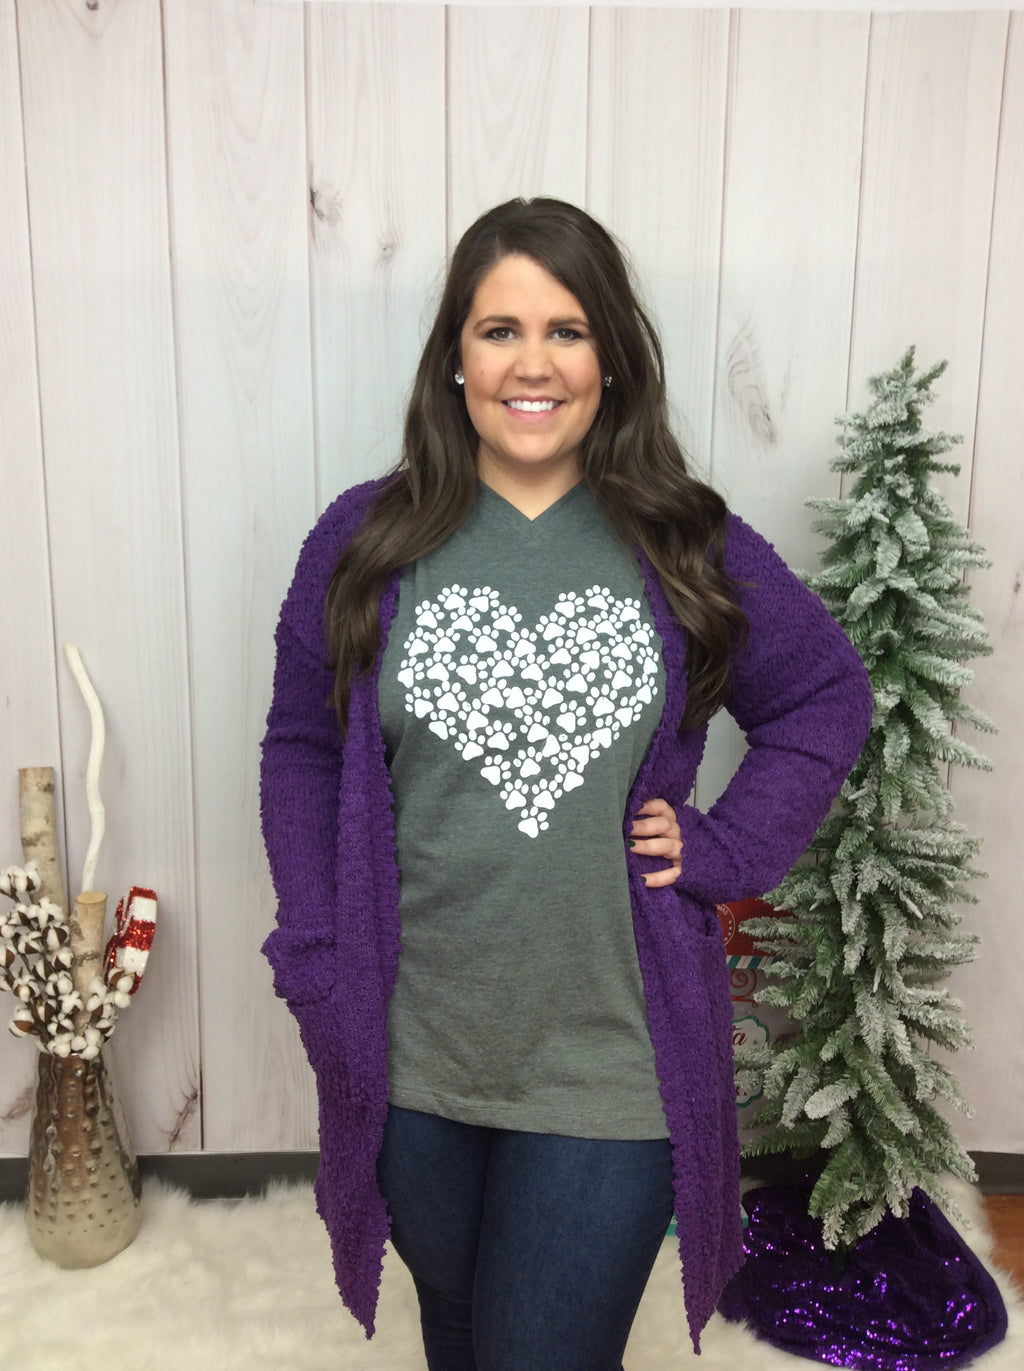 Paw Print On My Heart Graphic Tee - FINAL SALE CLEARANCE